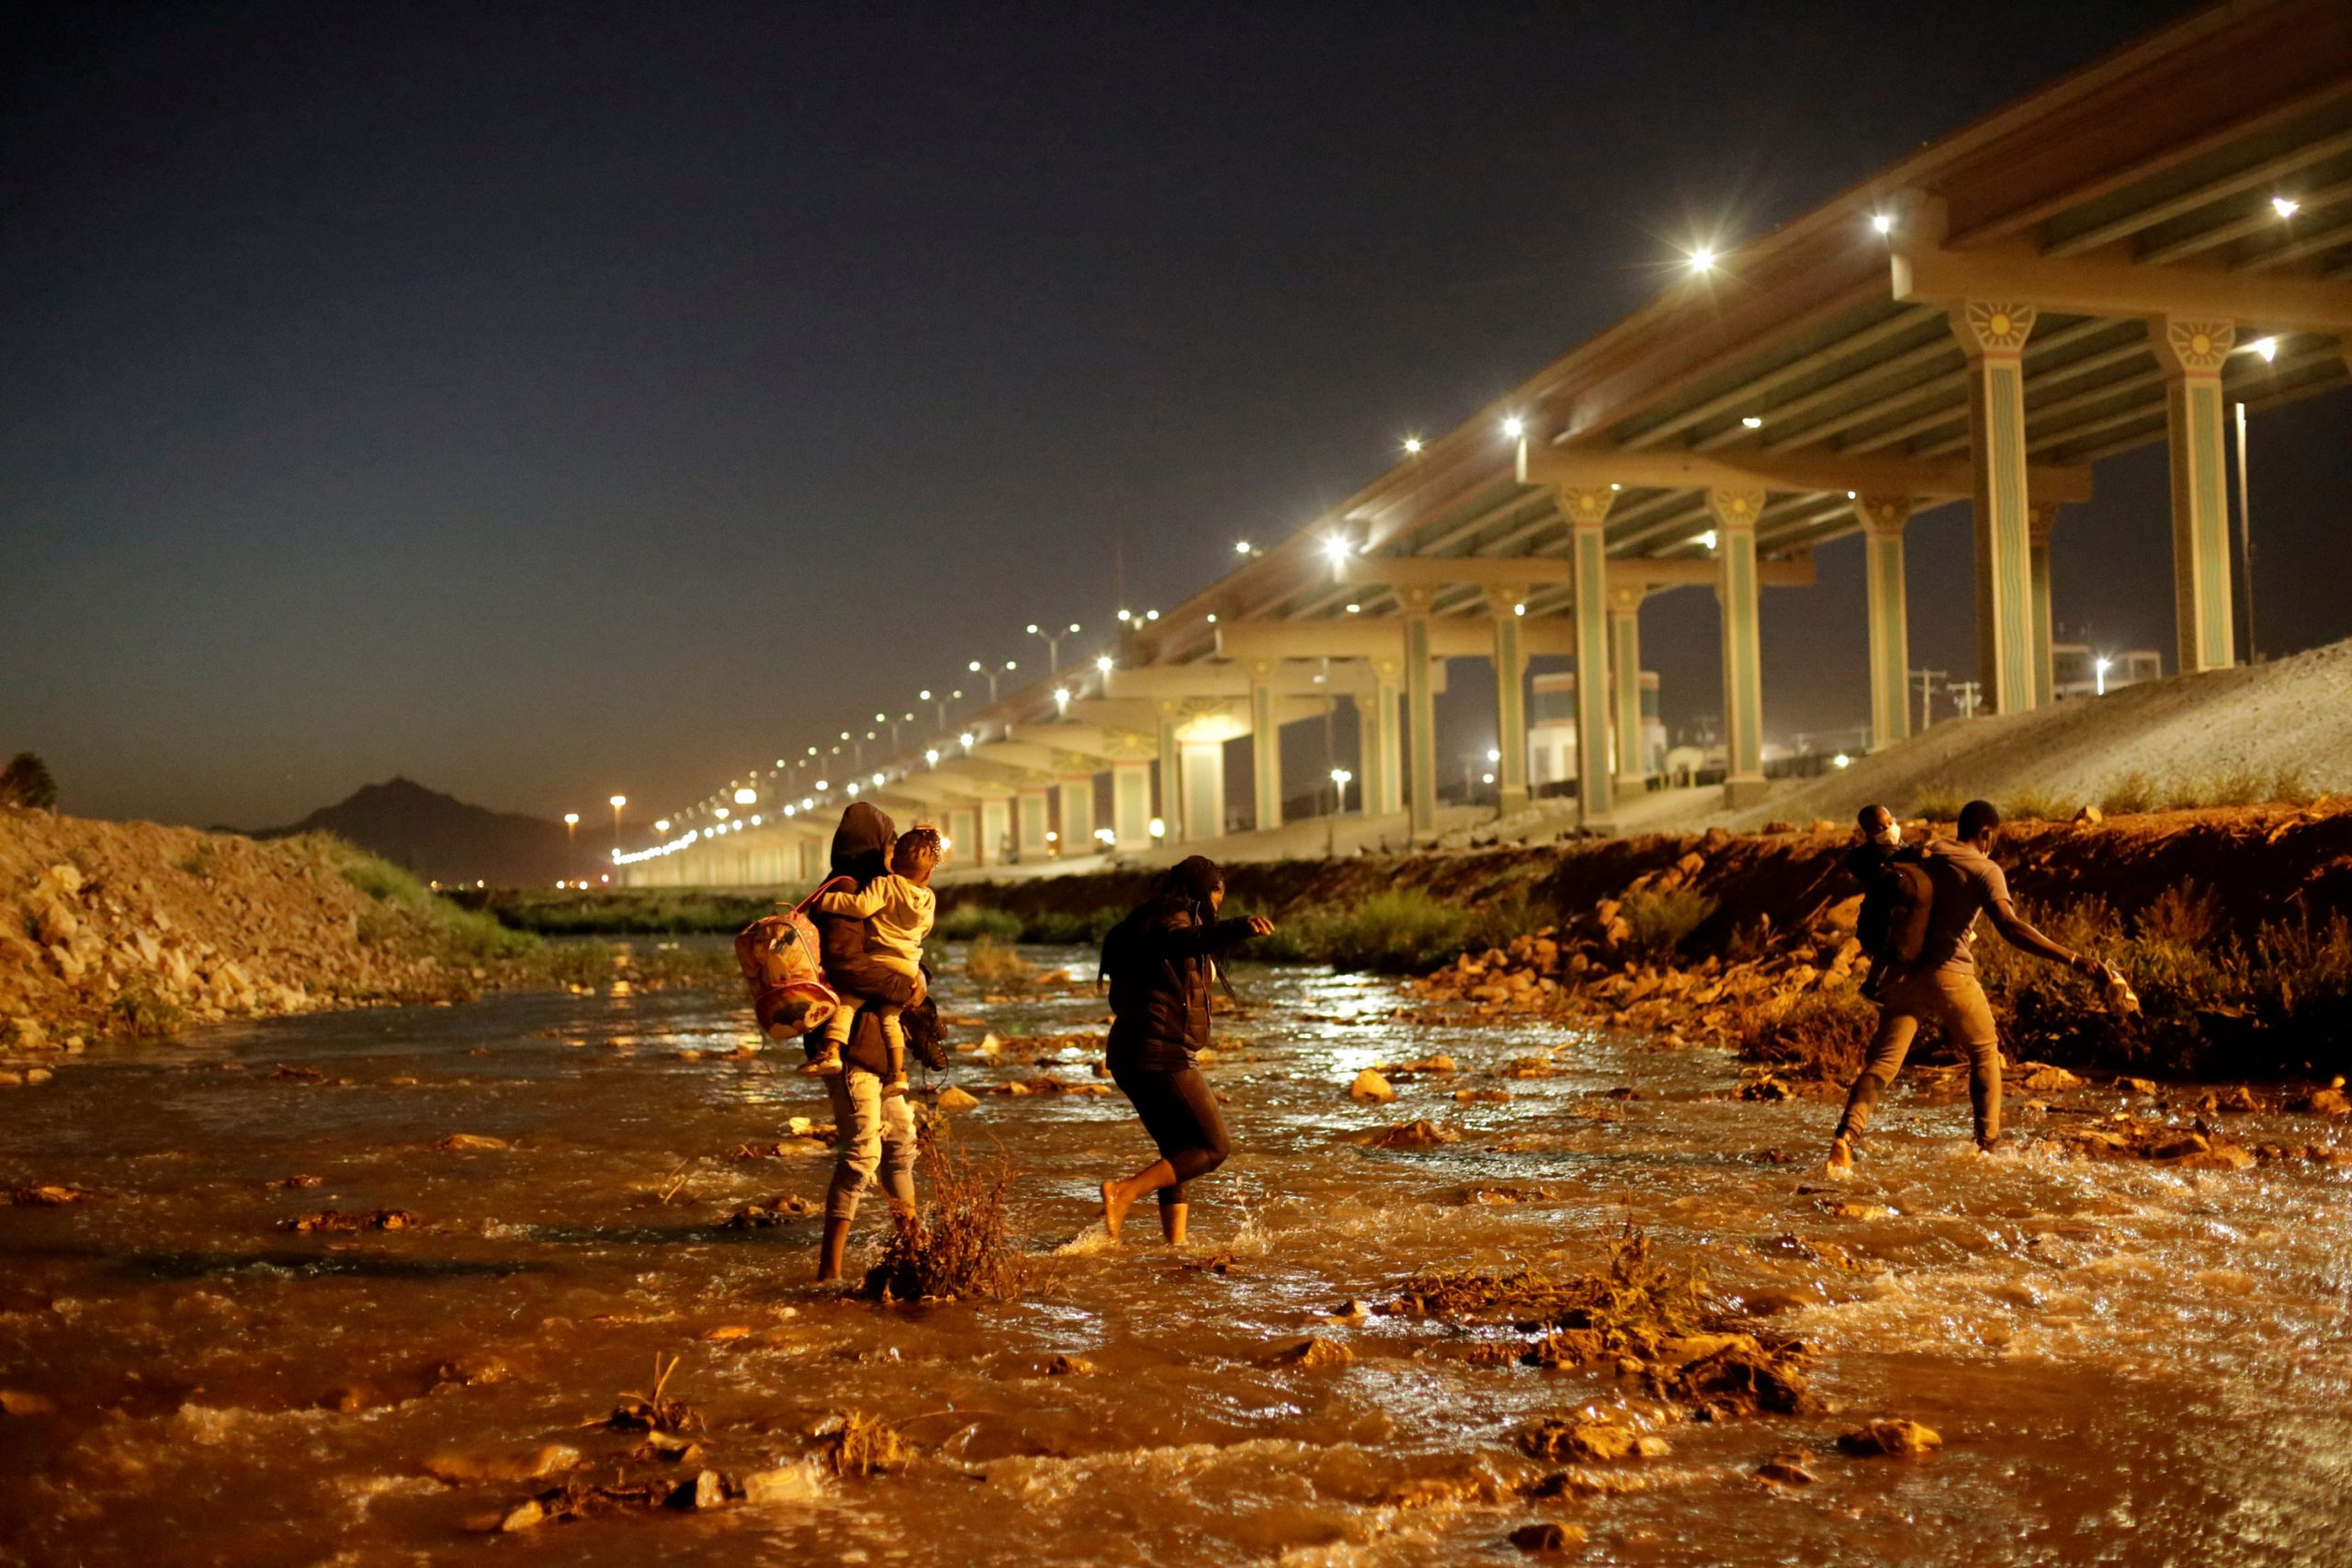 Migrants cross the Rio Bravo river to turn themselves in to U.S Border Patrol agents to request for asylum in El Paso, as seen from Ciudad Juarez.